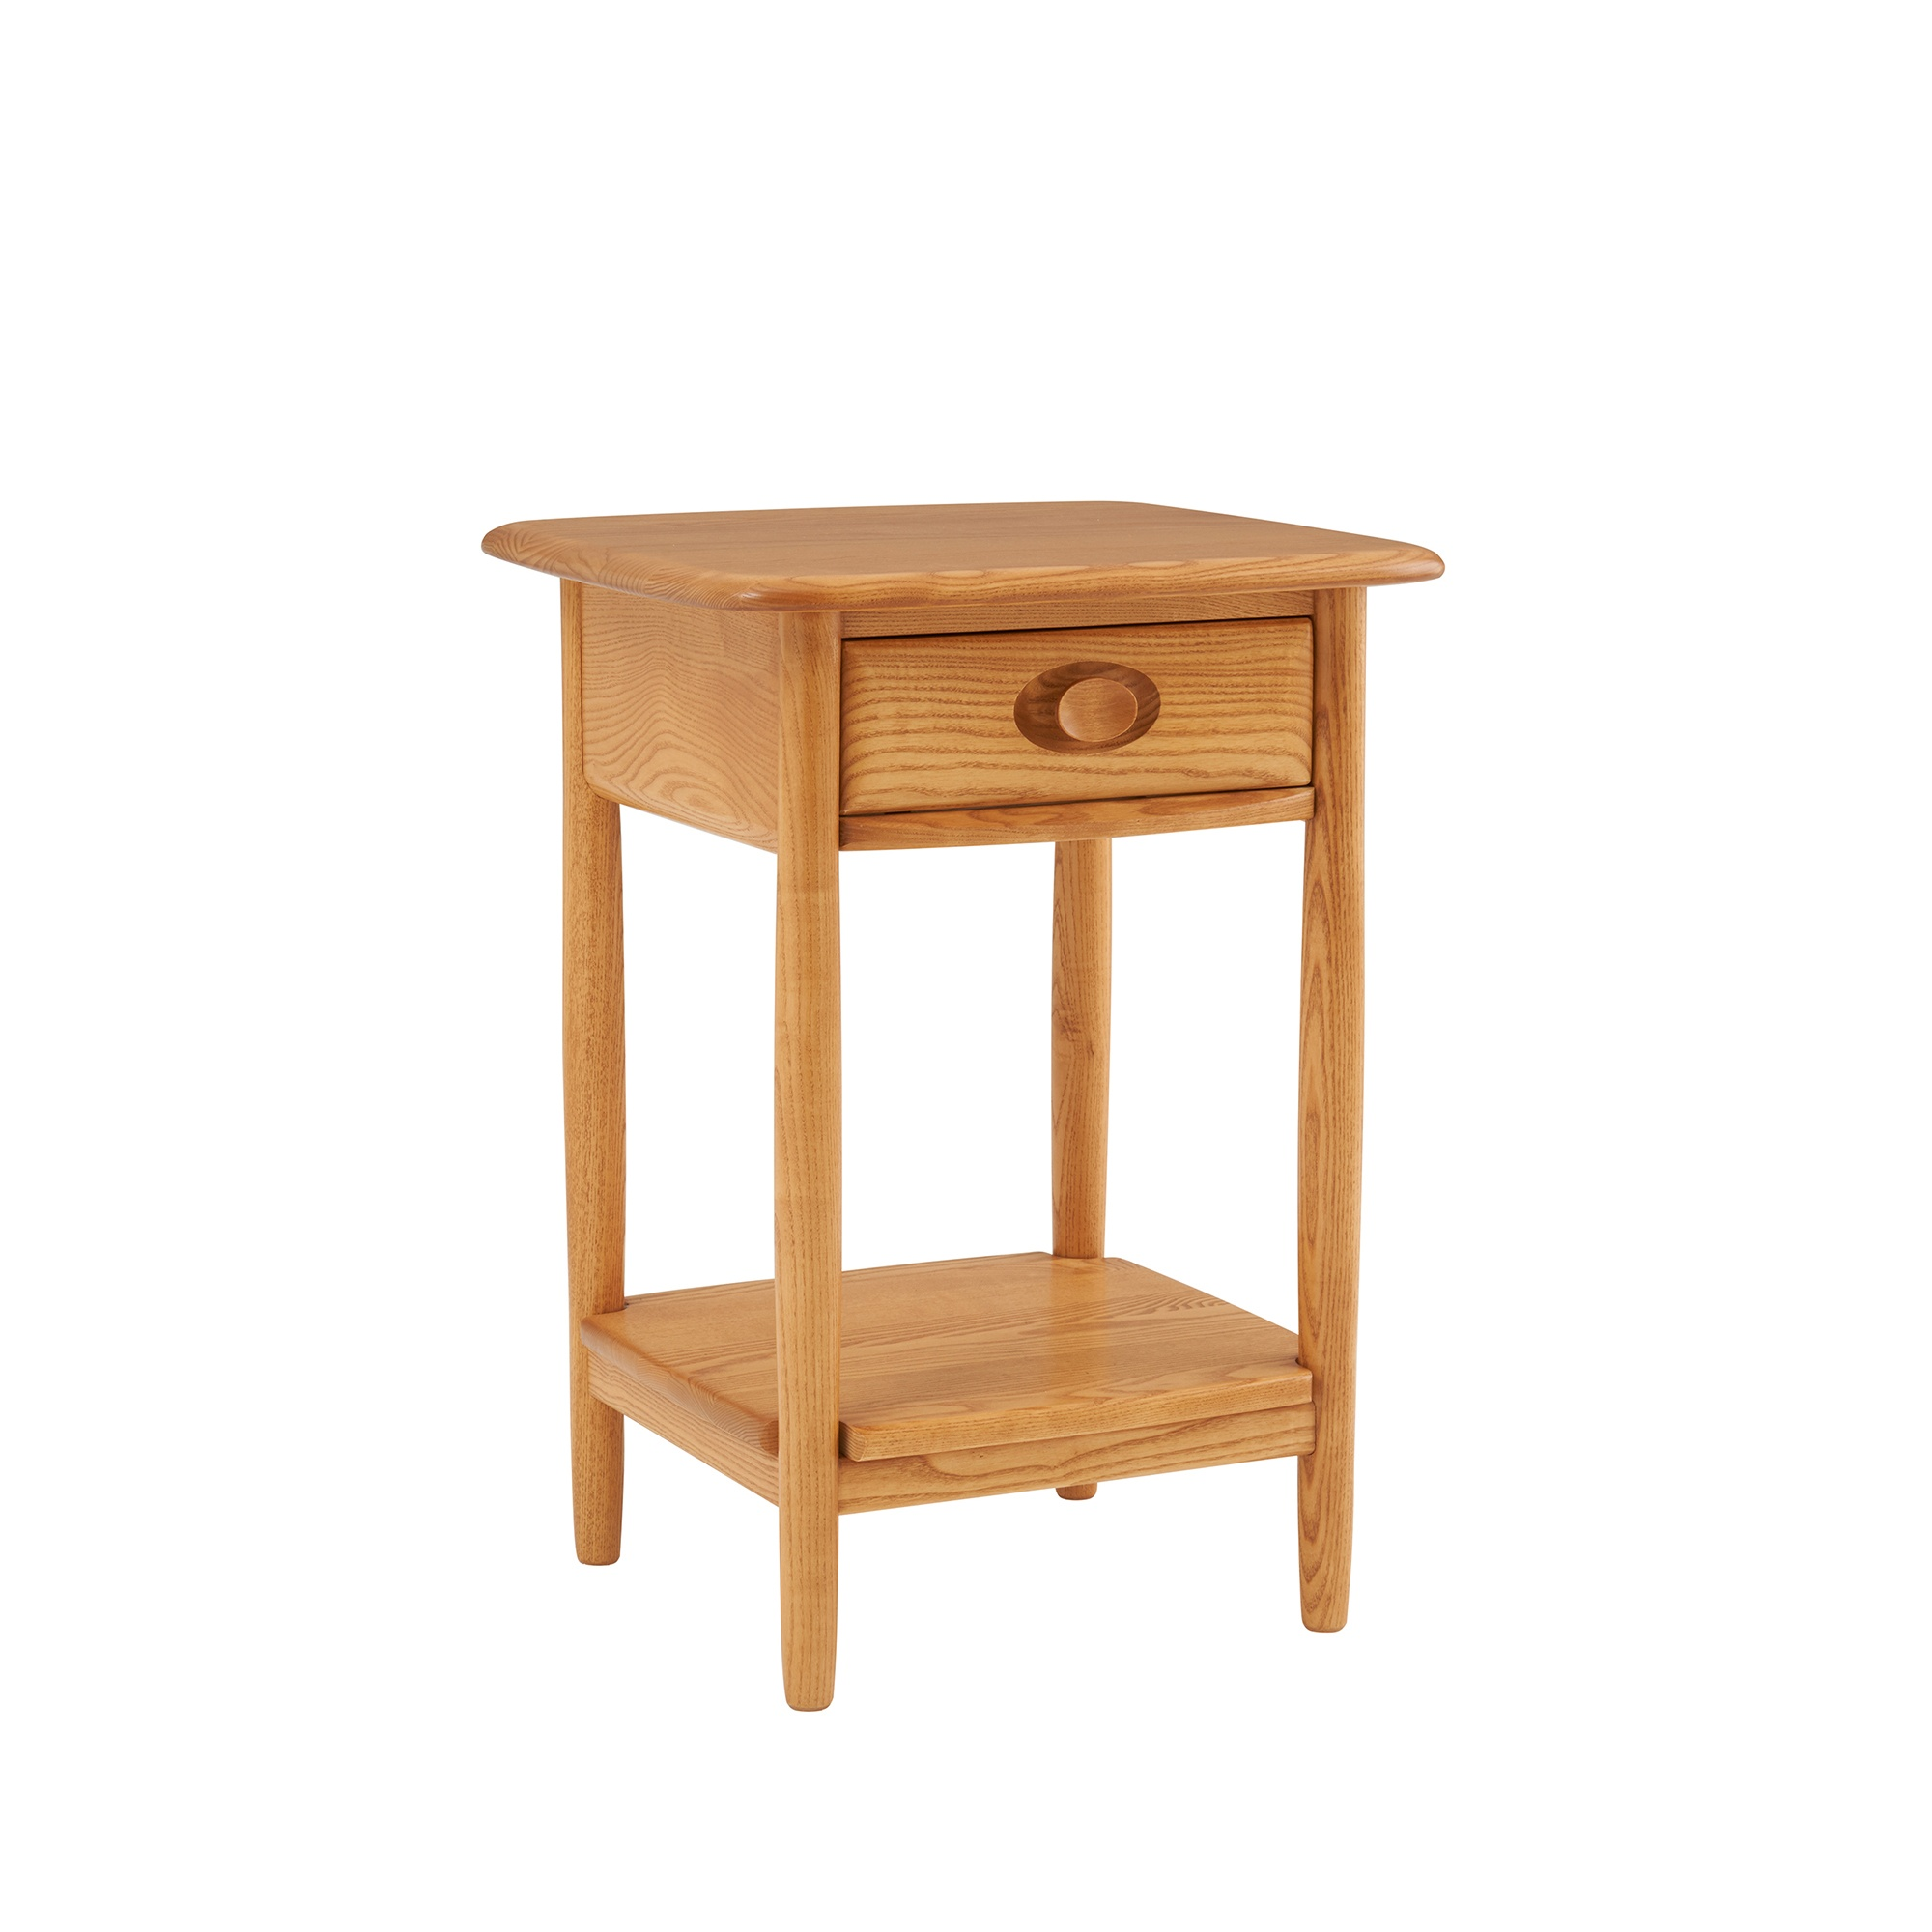 Ercol windsor lamp table ercol cookes furniture ercol windsor lamp table aloadofball Image collections